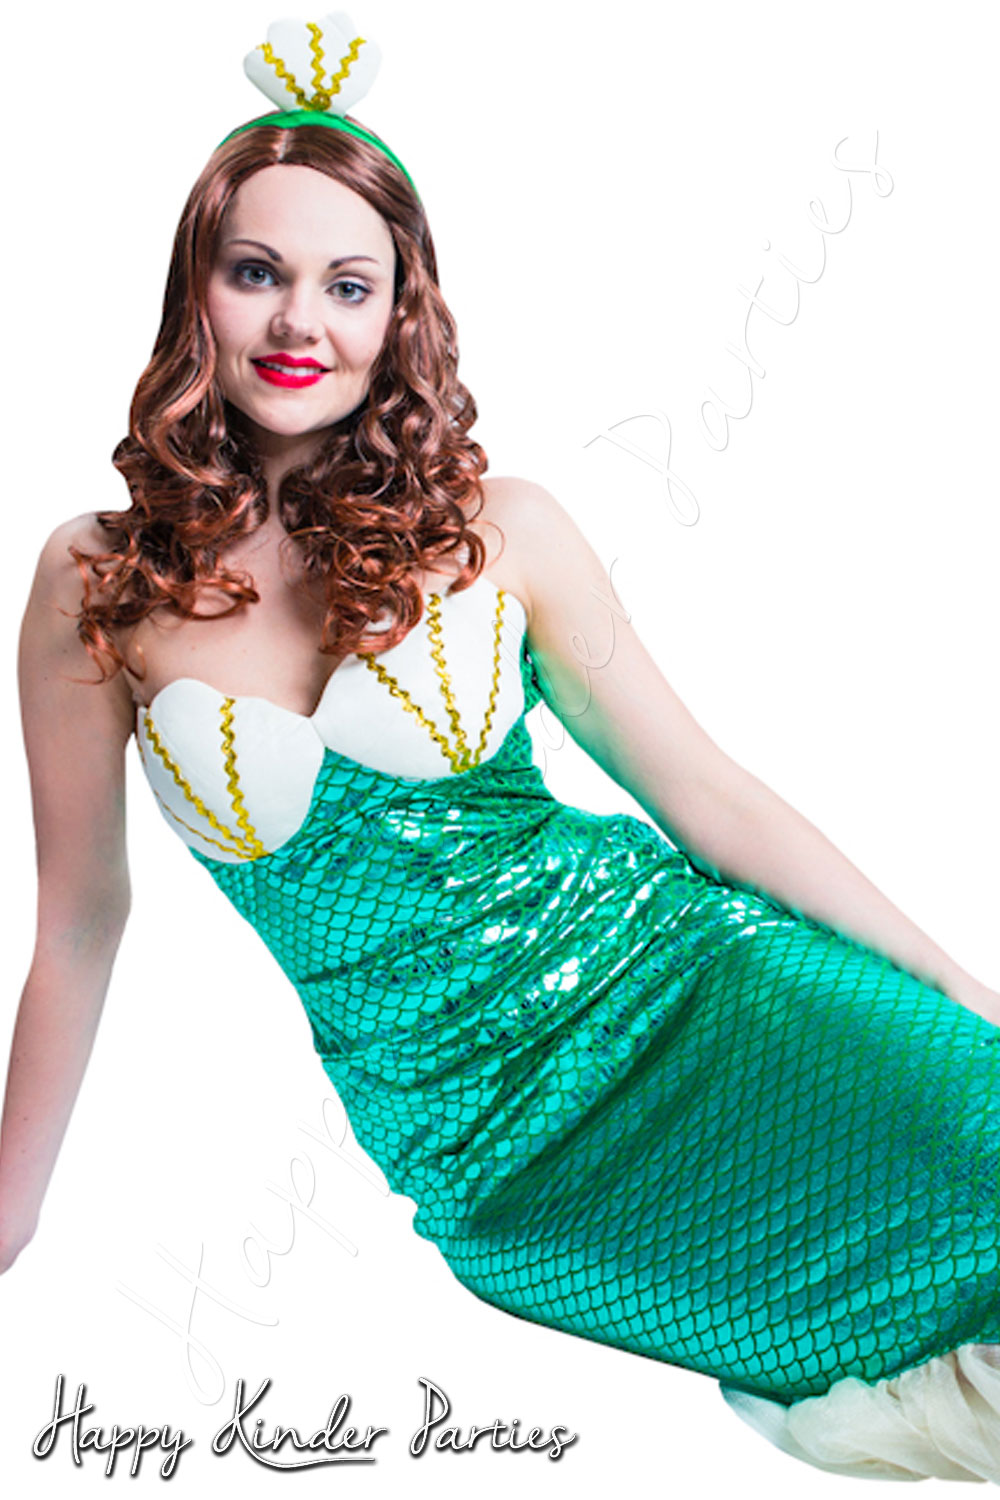 Mermaid Childrens Party Entertainer Costume